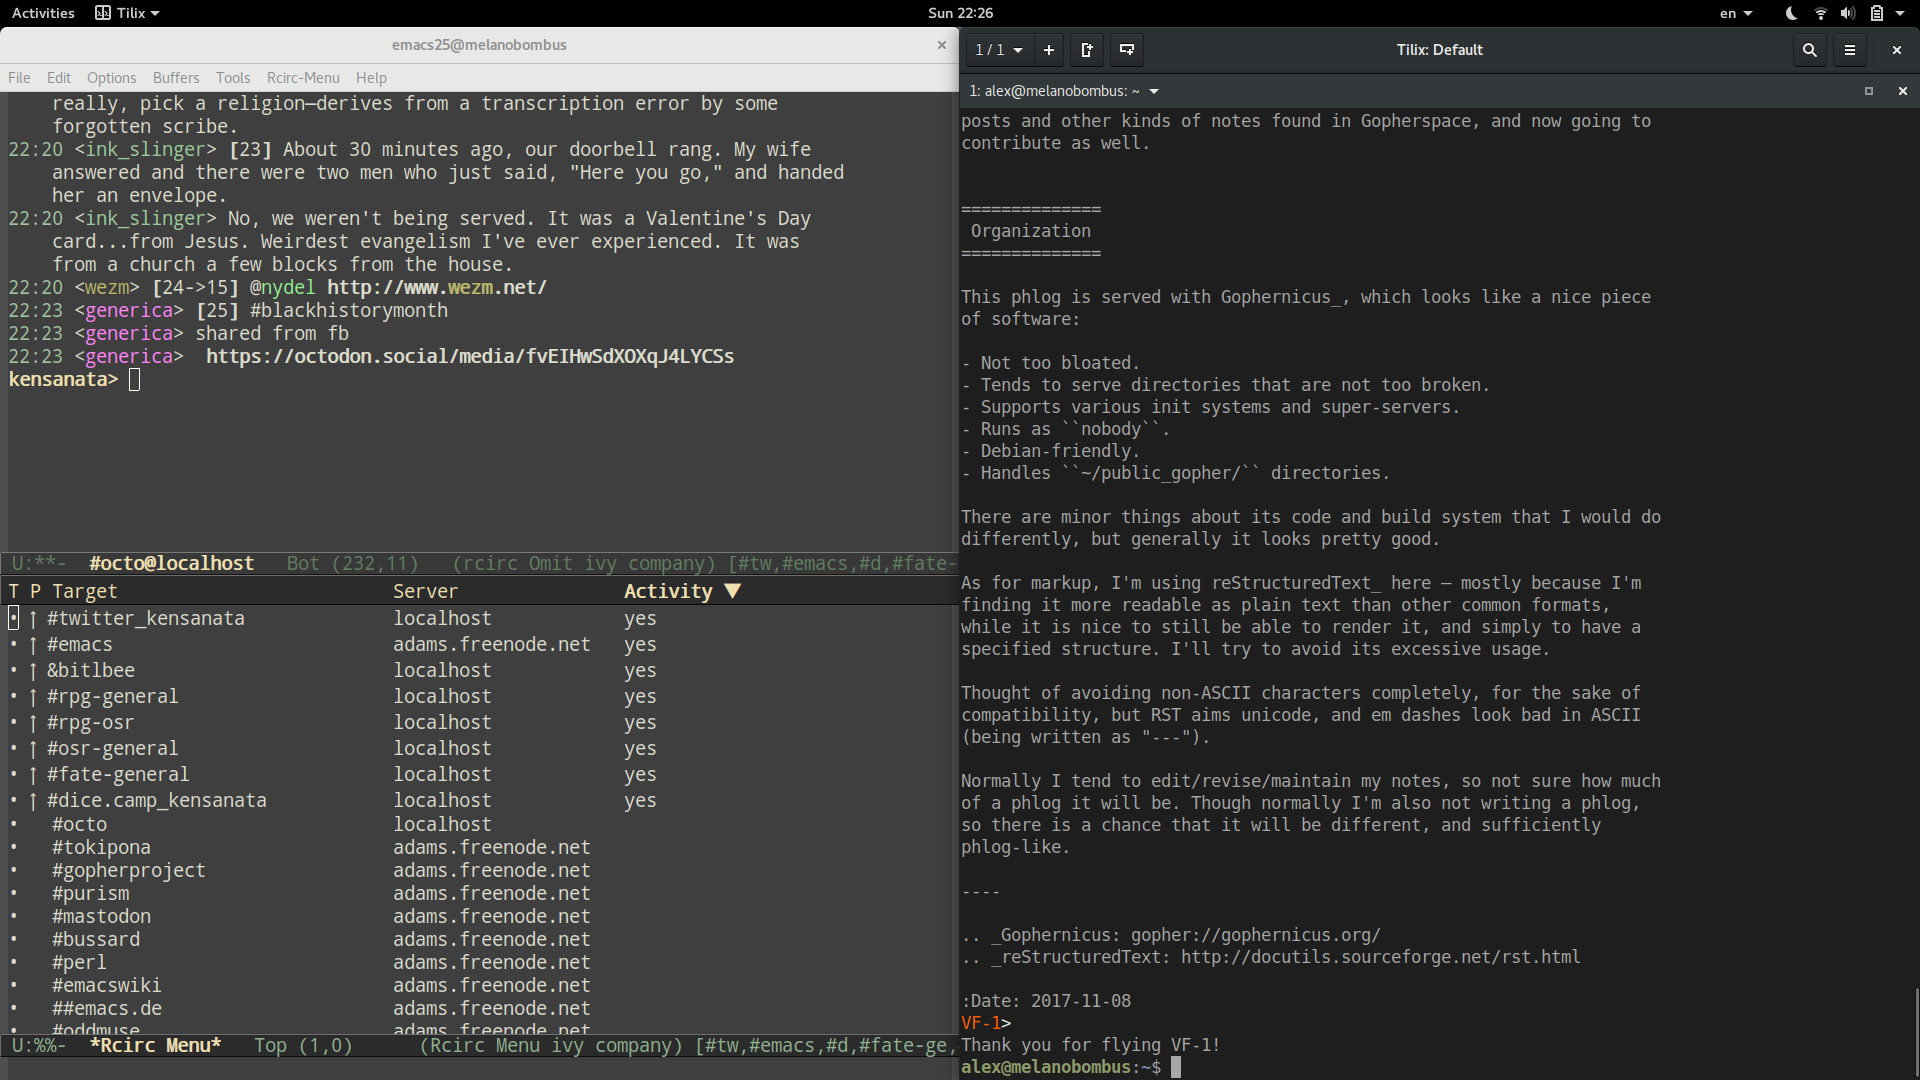 Screenshot showing Emacs and Tilix